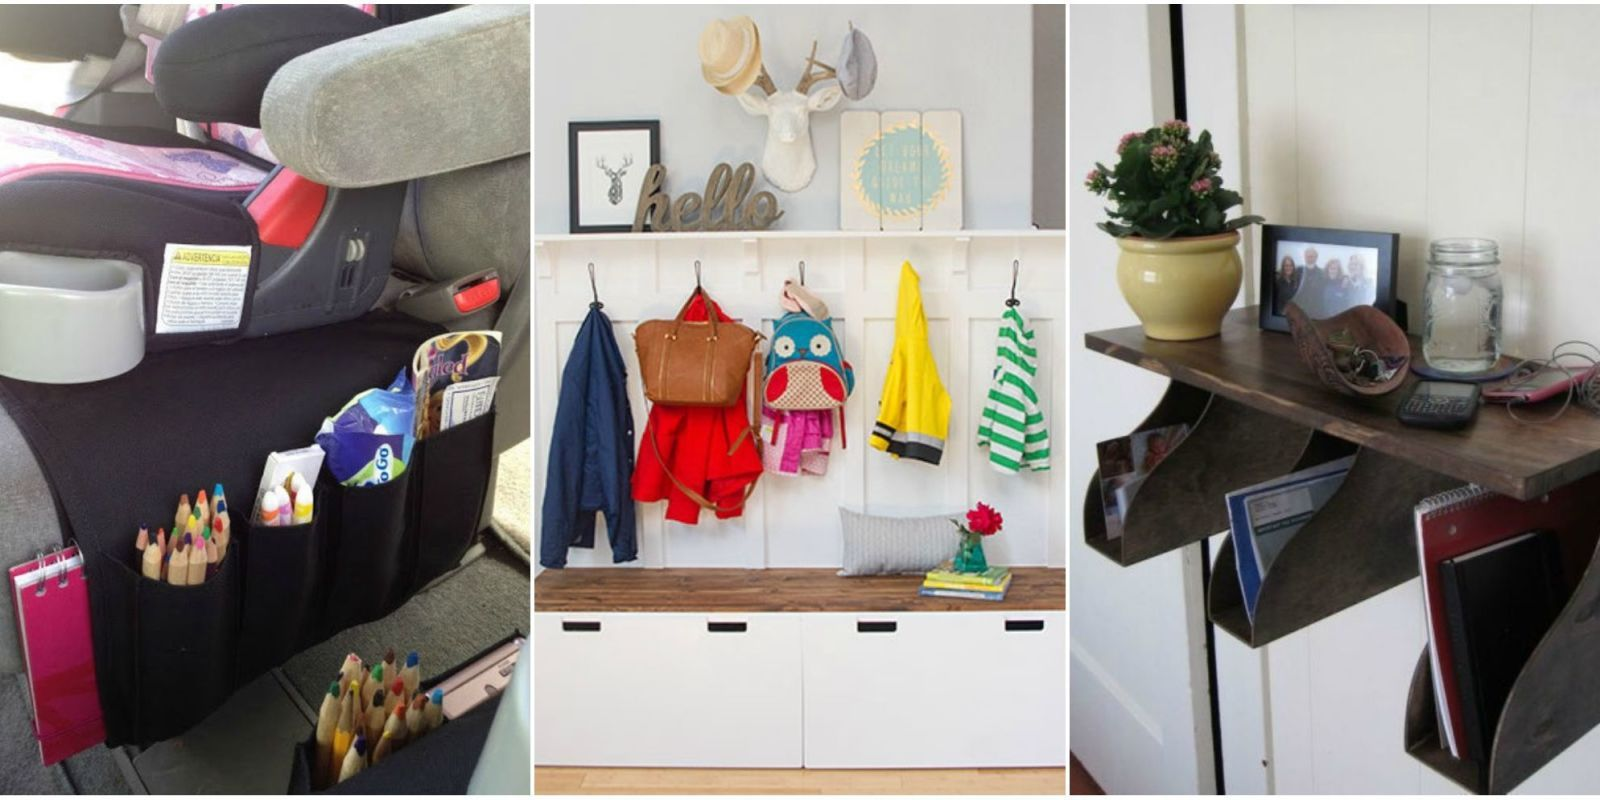 Excellent Ikea Hacks To Help You Organize Your Life With